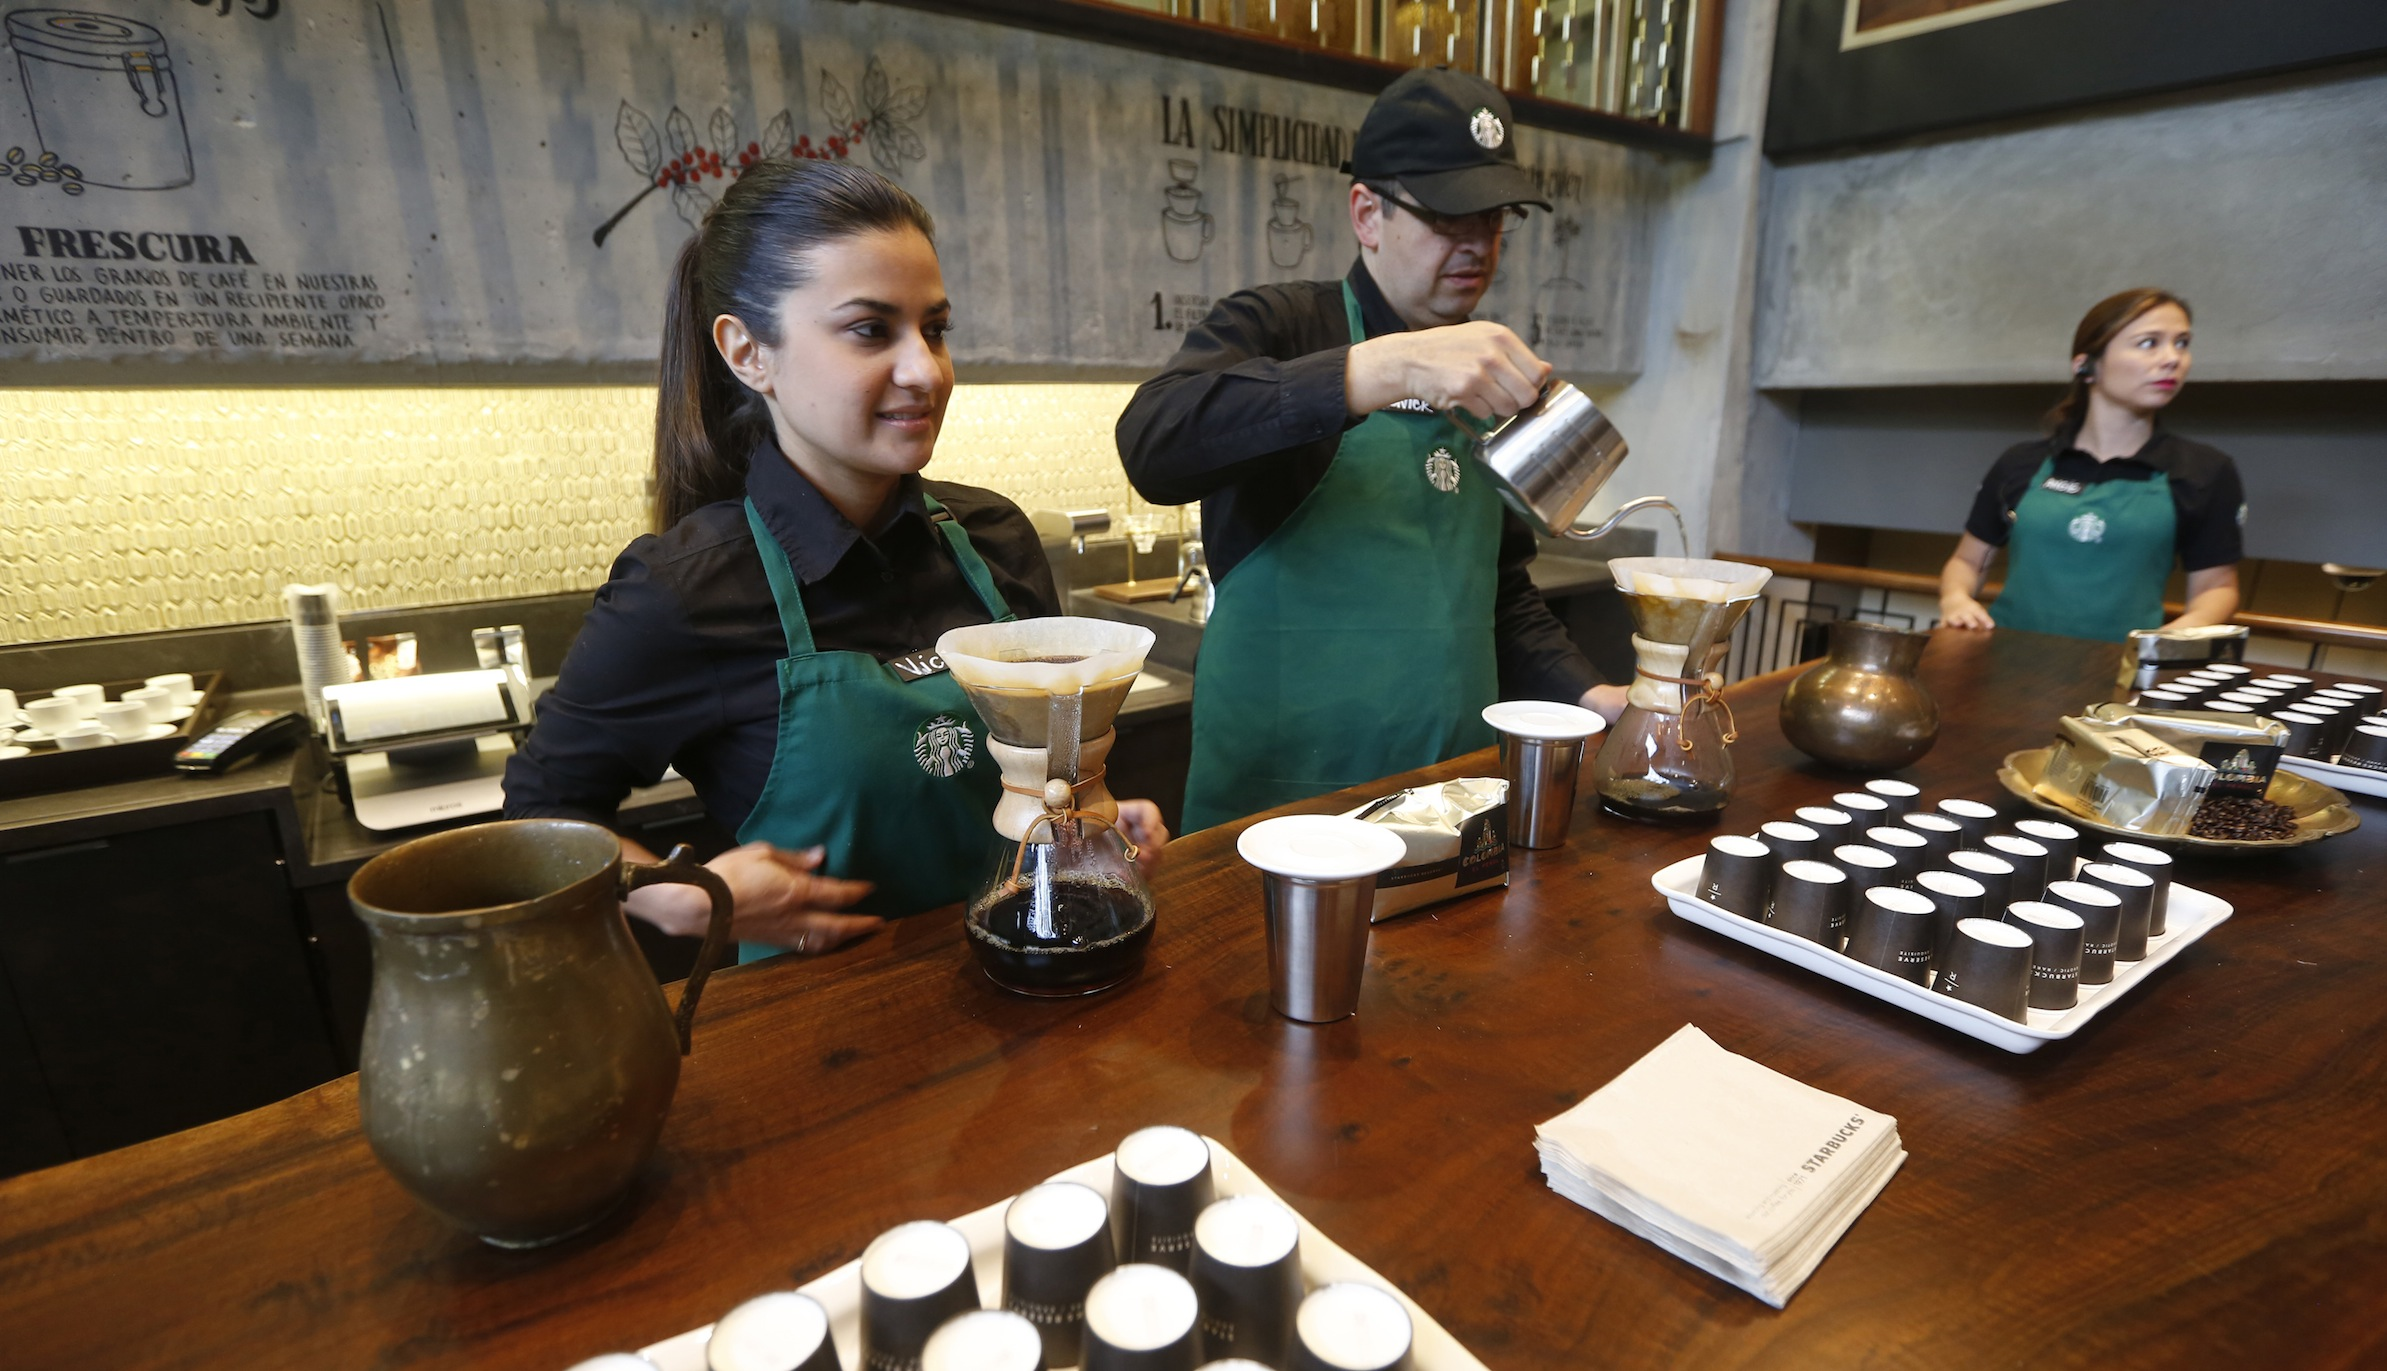 Workers prepare coffee during the inauguration of Starbuck's first Colombian store at 93 park in Bogota July 16, 2014. Starbucks Corp opened its first shop in Colombia on Wednesday, 43 years after the world's biggest coffee chain first started buying beans from the country famous for its premium arabica coffee named after fictional coffee farmer Juan Valdez. REUTERS/John Vizcaino (COLOMBIA - Tags: BUSINESS) - RTR3YXUW